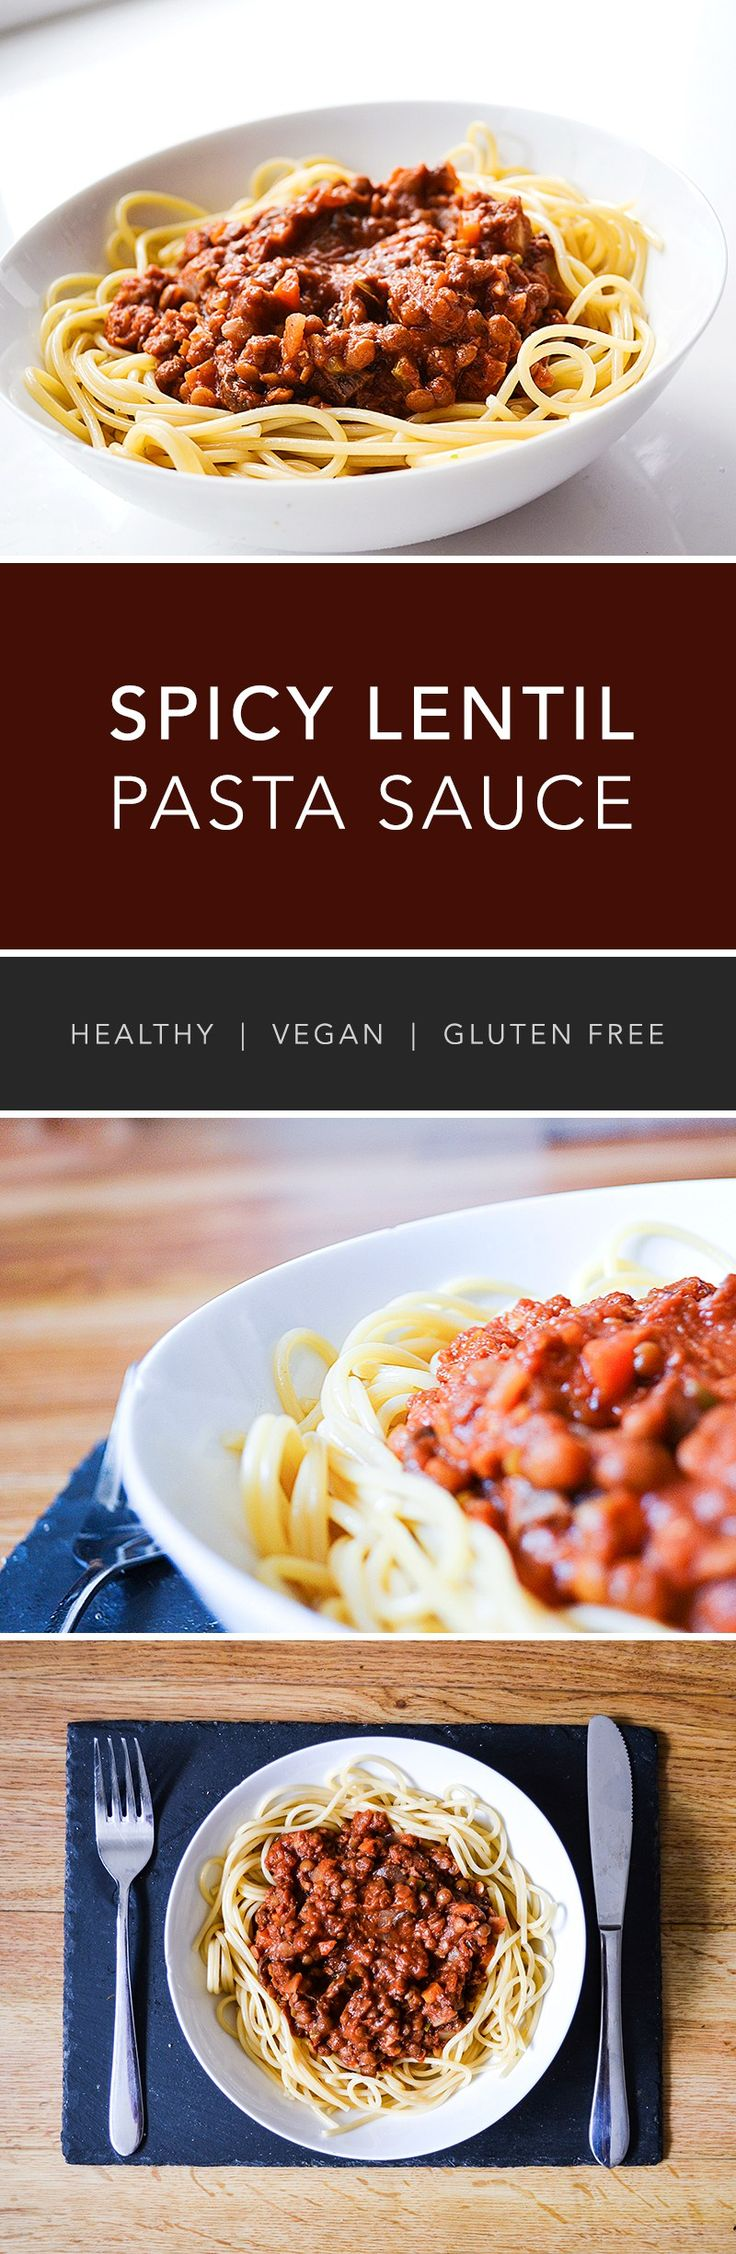 Healthy Spicy Lentil Pasta Sauce (Vegan) - you can make this in a slow cooker or on the stove top, depending on what works!